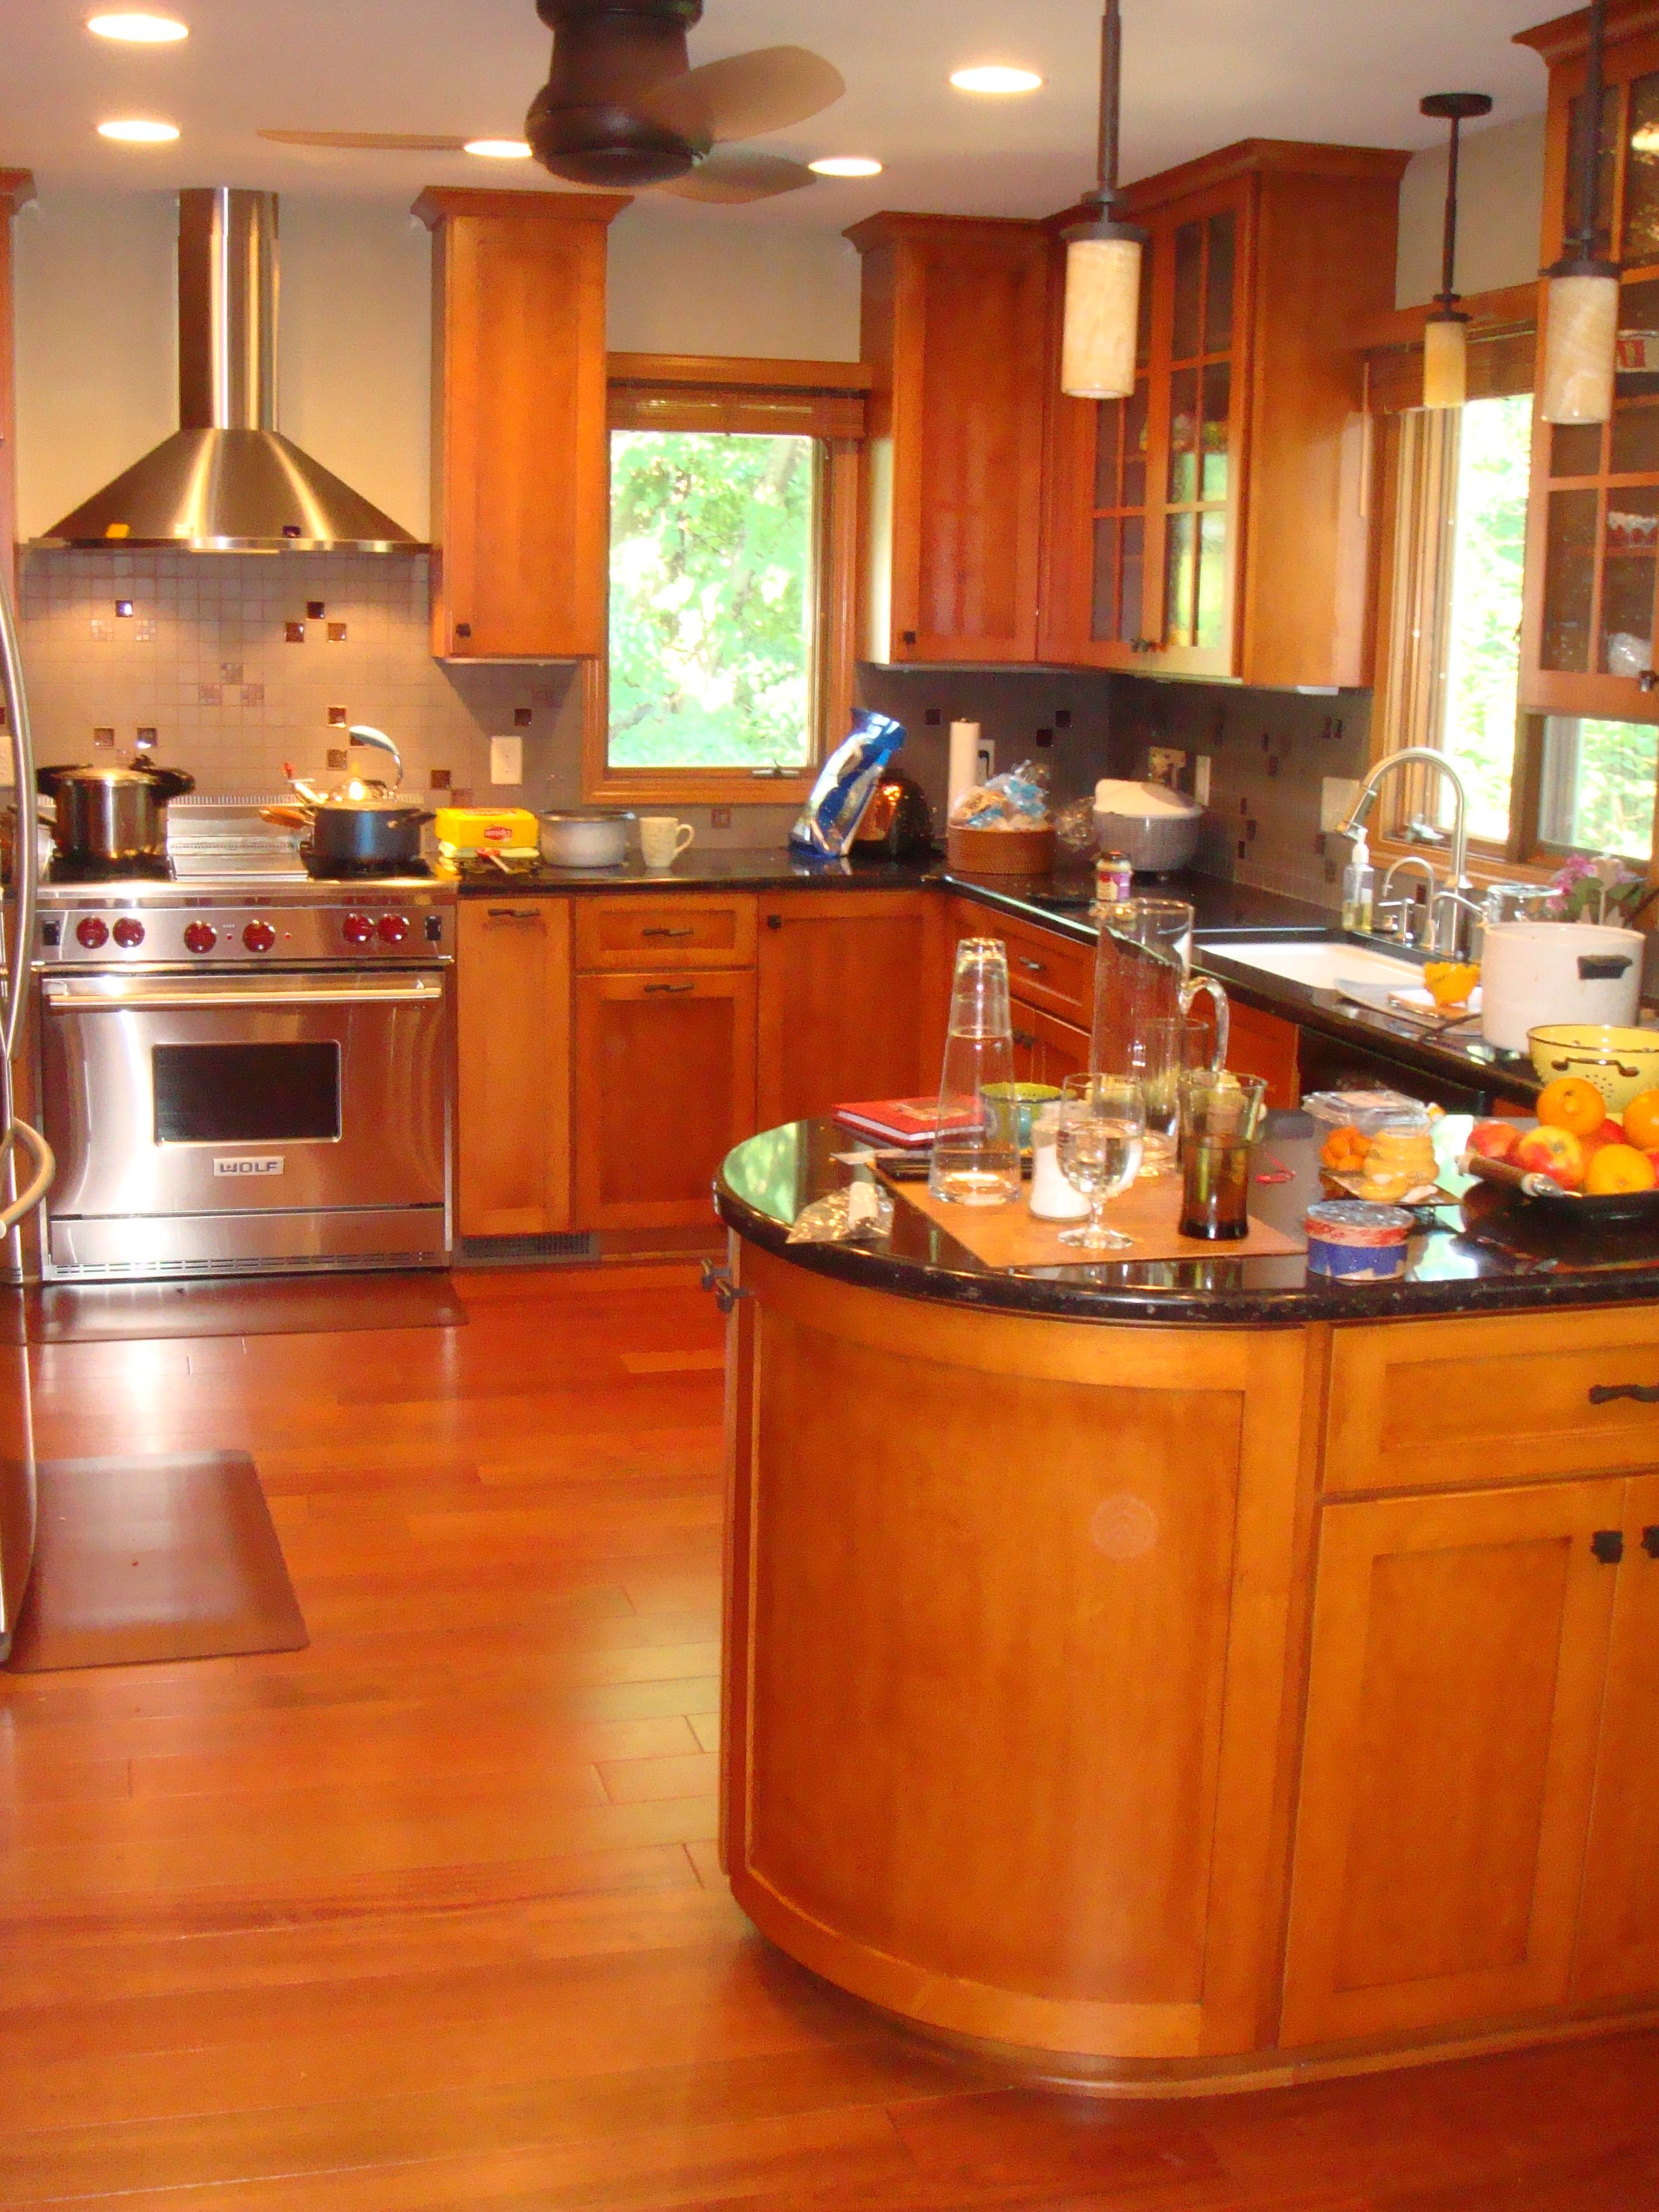 Kitchen Remodeling Leads Amazing Good News For Homeowners Minor Kitchen Remodel Leads To Major . Design Inspiration